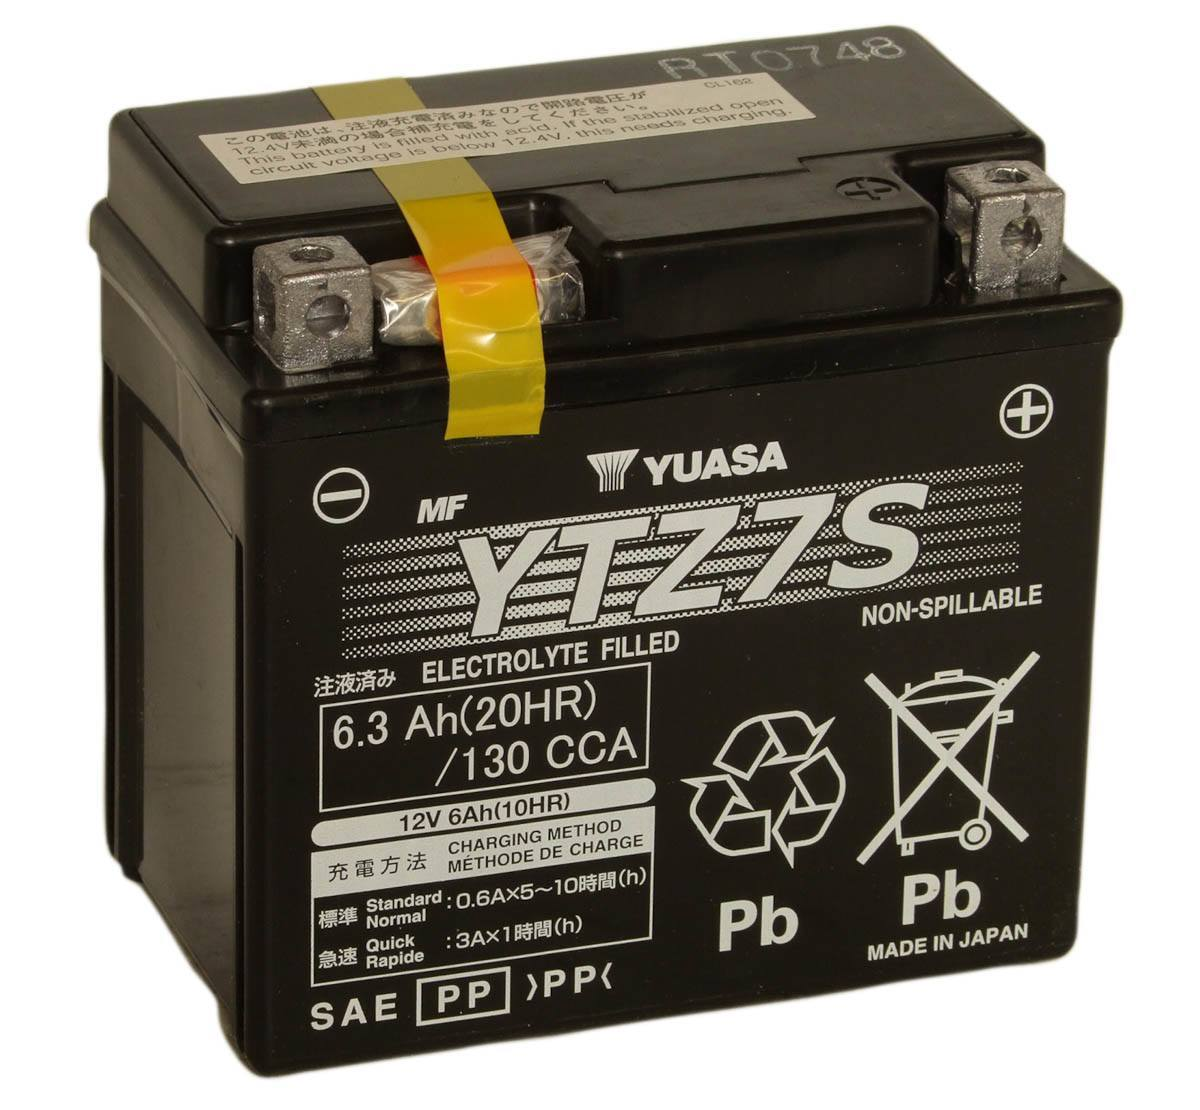 Get it delivered to your door - Yuasa YTZ7S-E1 (Japan) - 2050 (EGP)